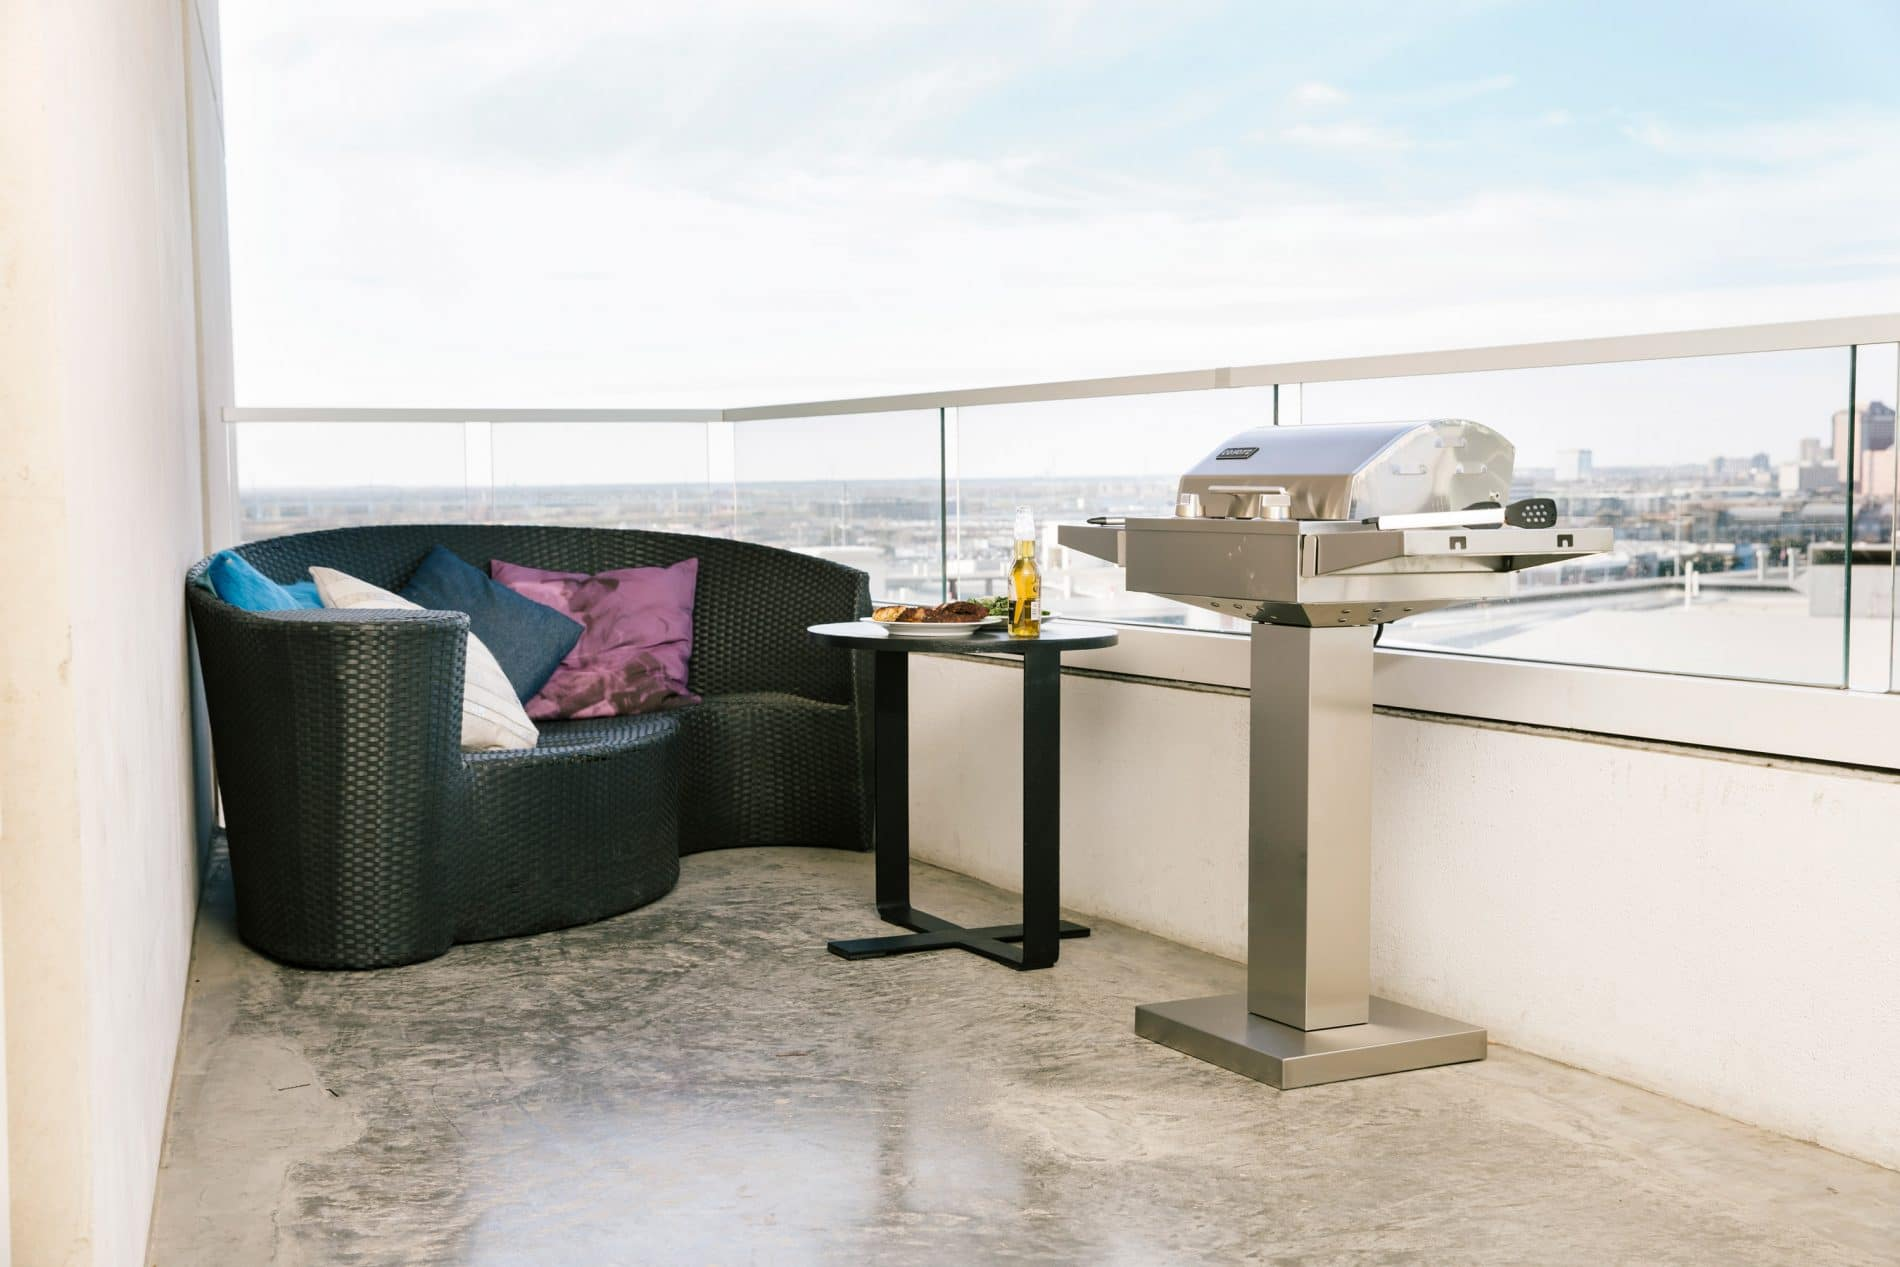 Gallery - Electric and Portable Grills - Coyote Outdoor Living on Coyote Outdoor Living Inc id=73902